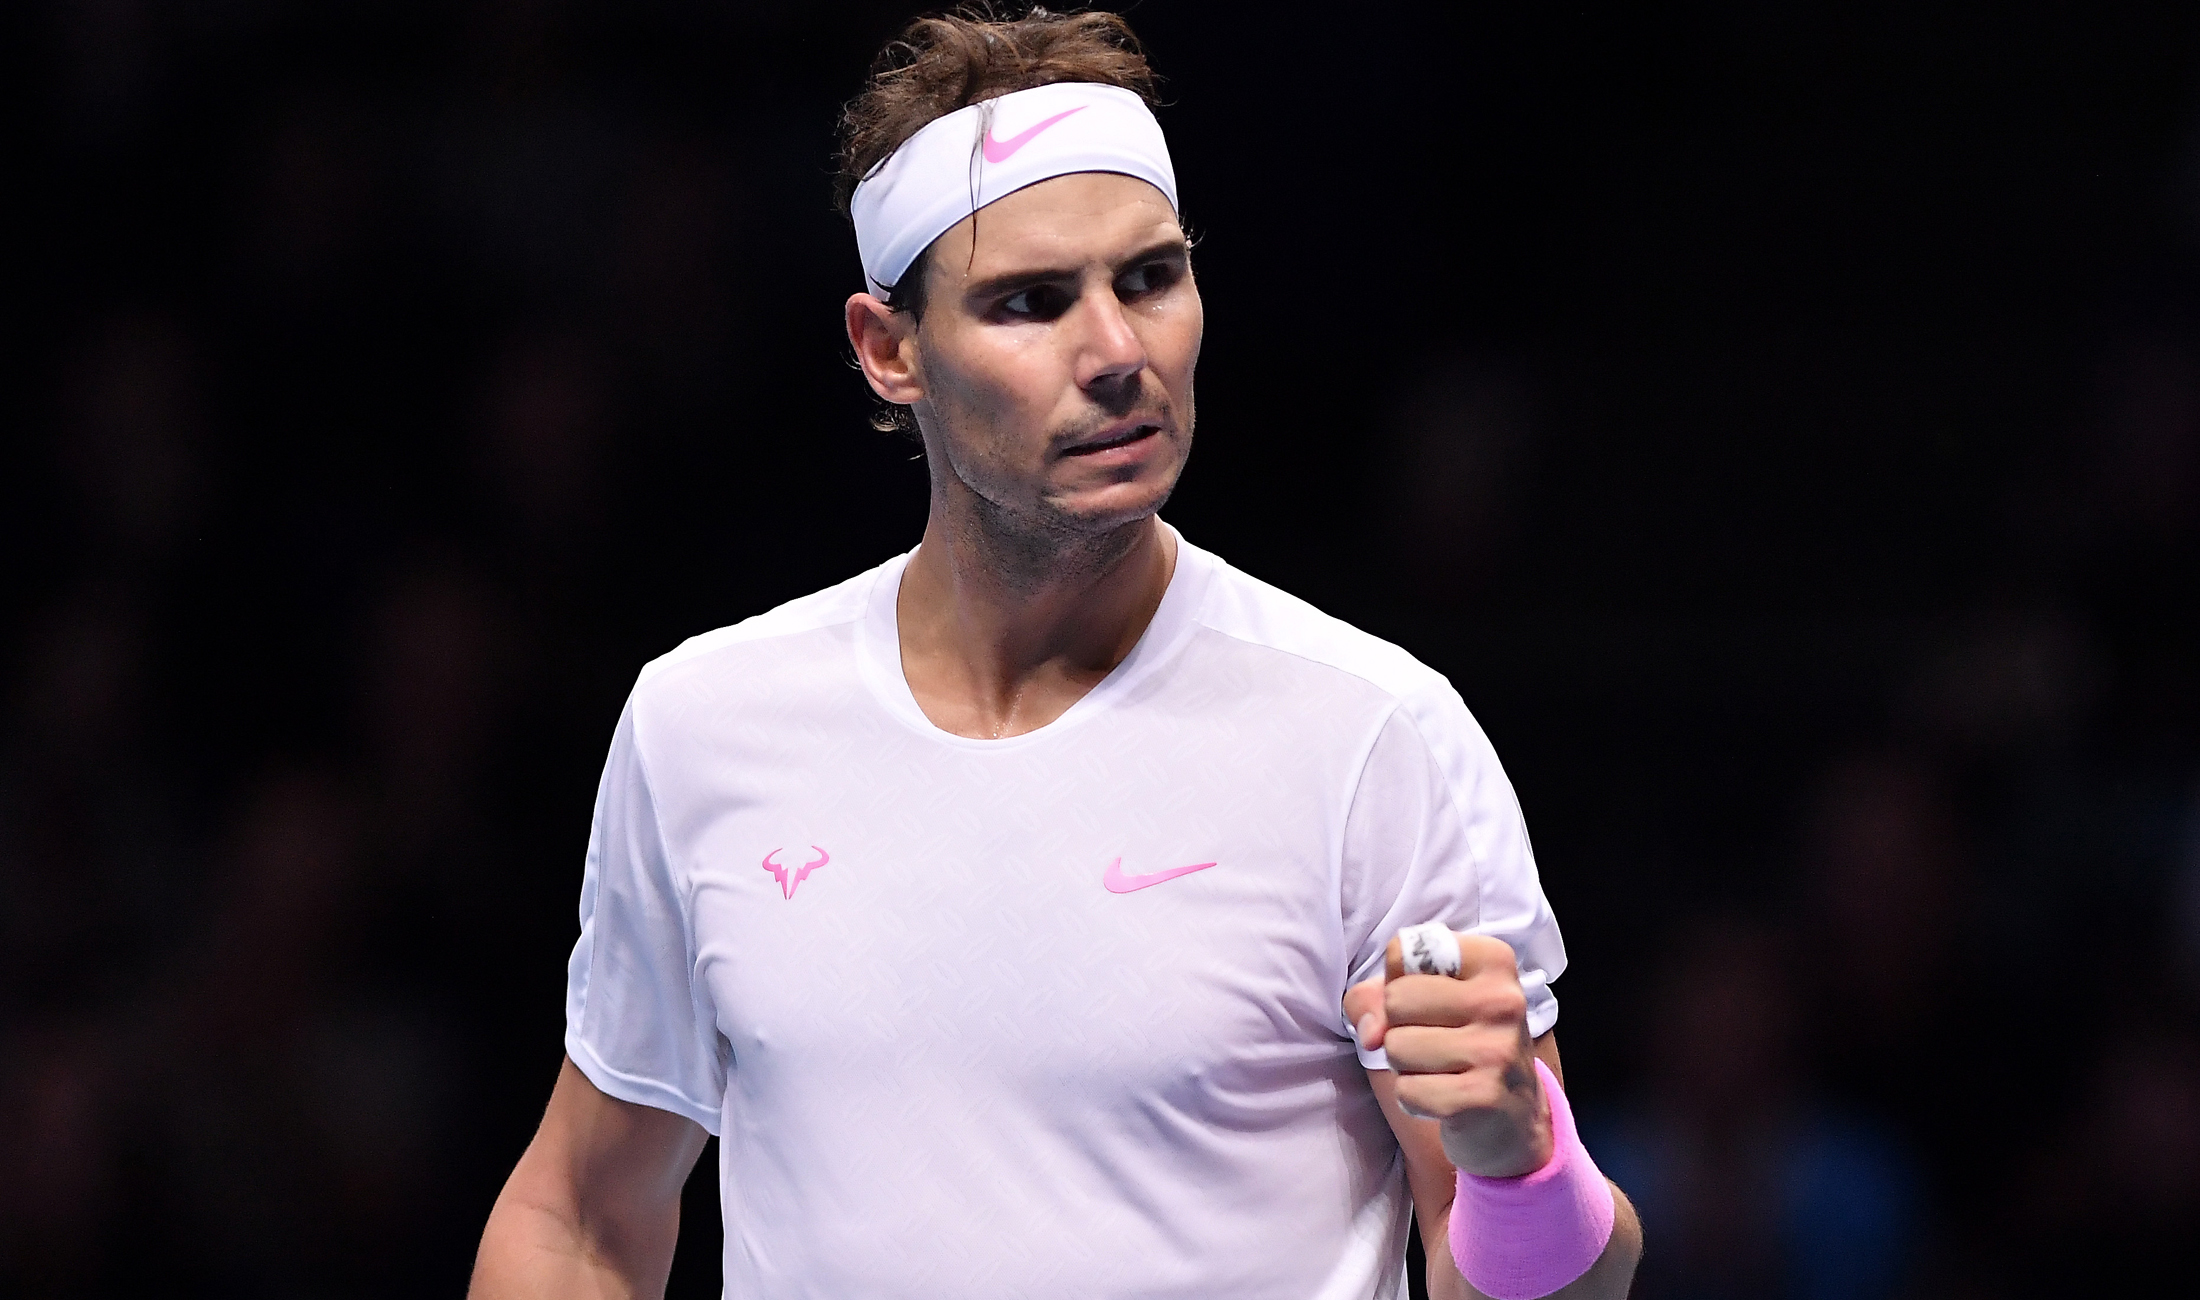 Rafael Nadal matches Roger Federer, Novak Djokovic with fifth year-end number one ranking - Sporting News AU